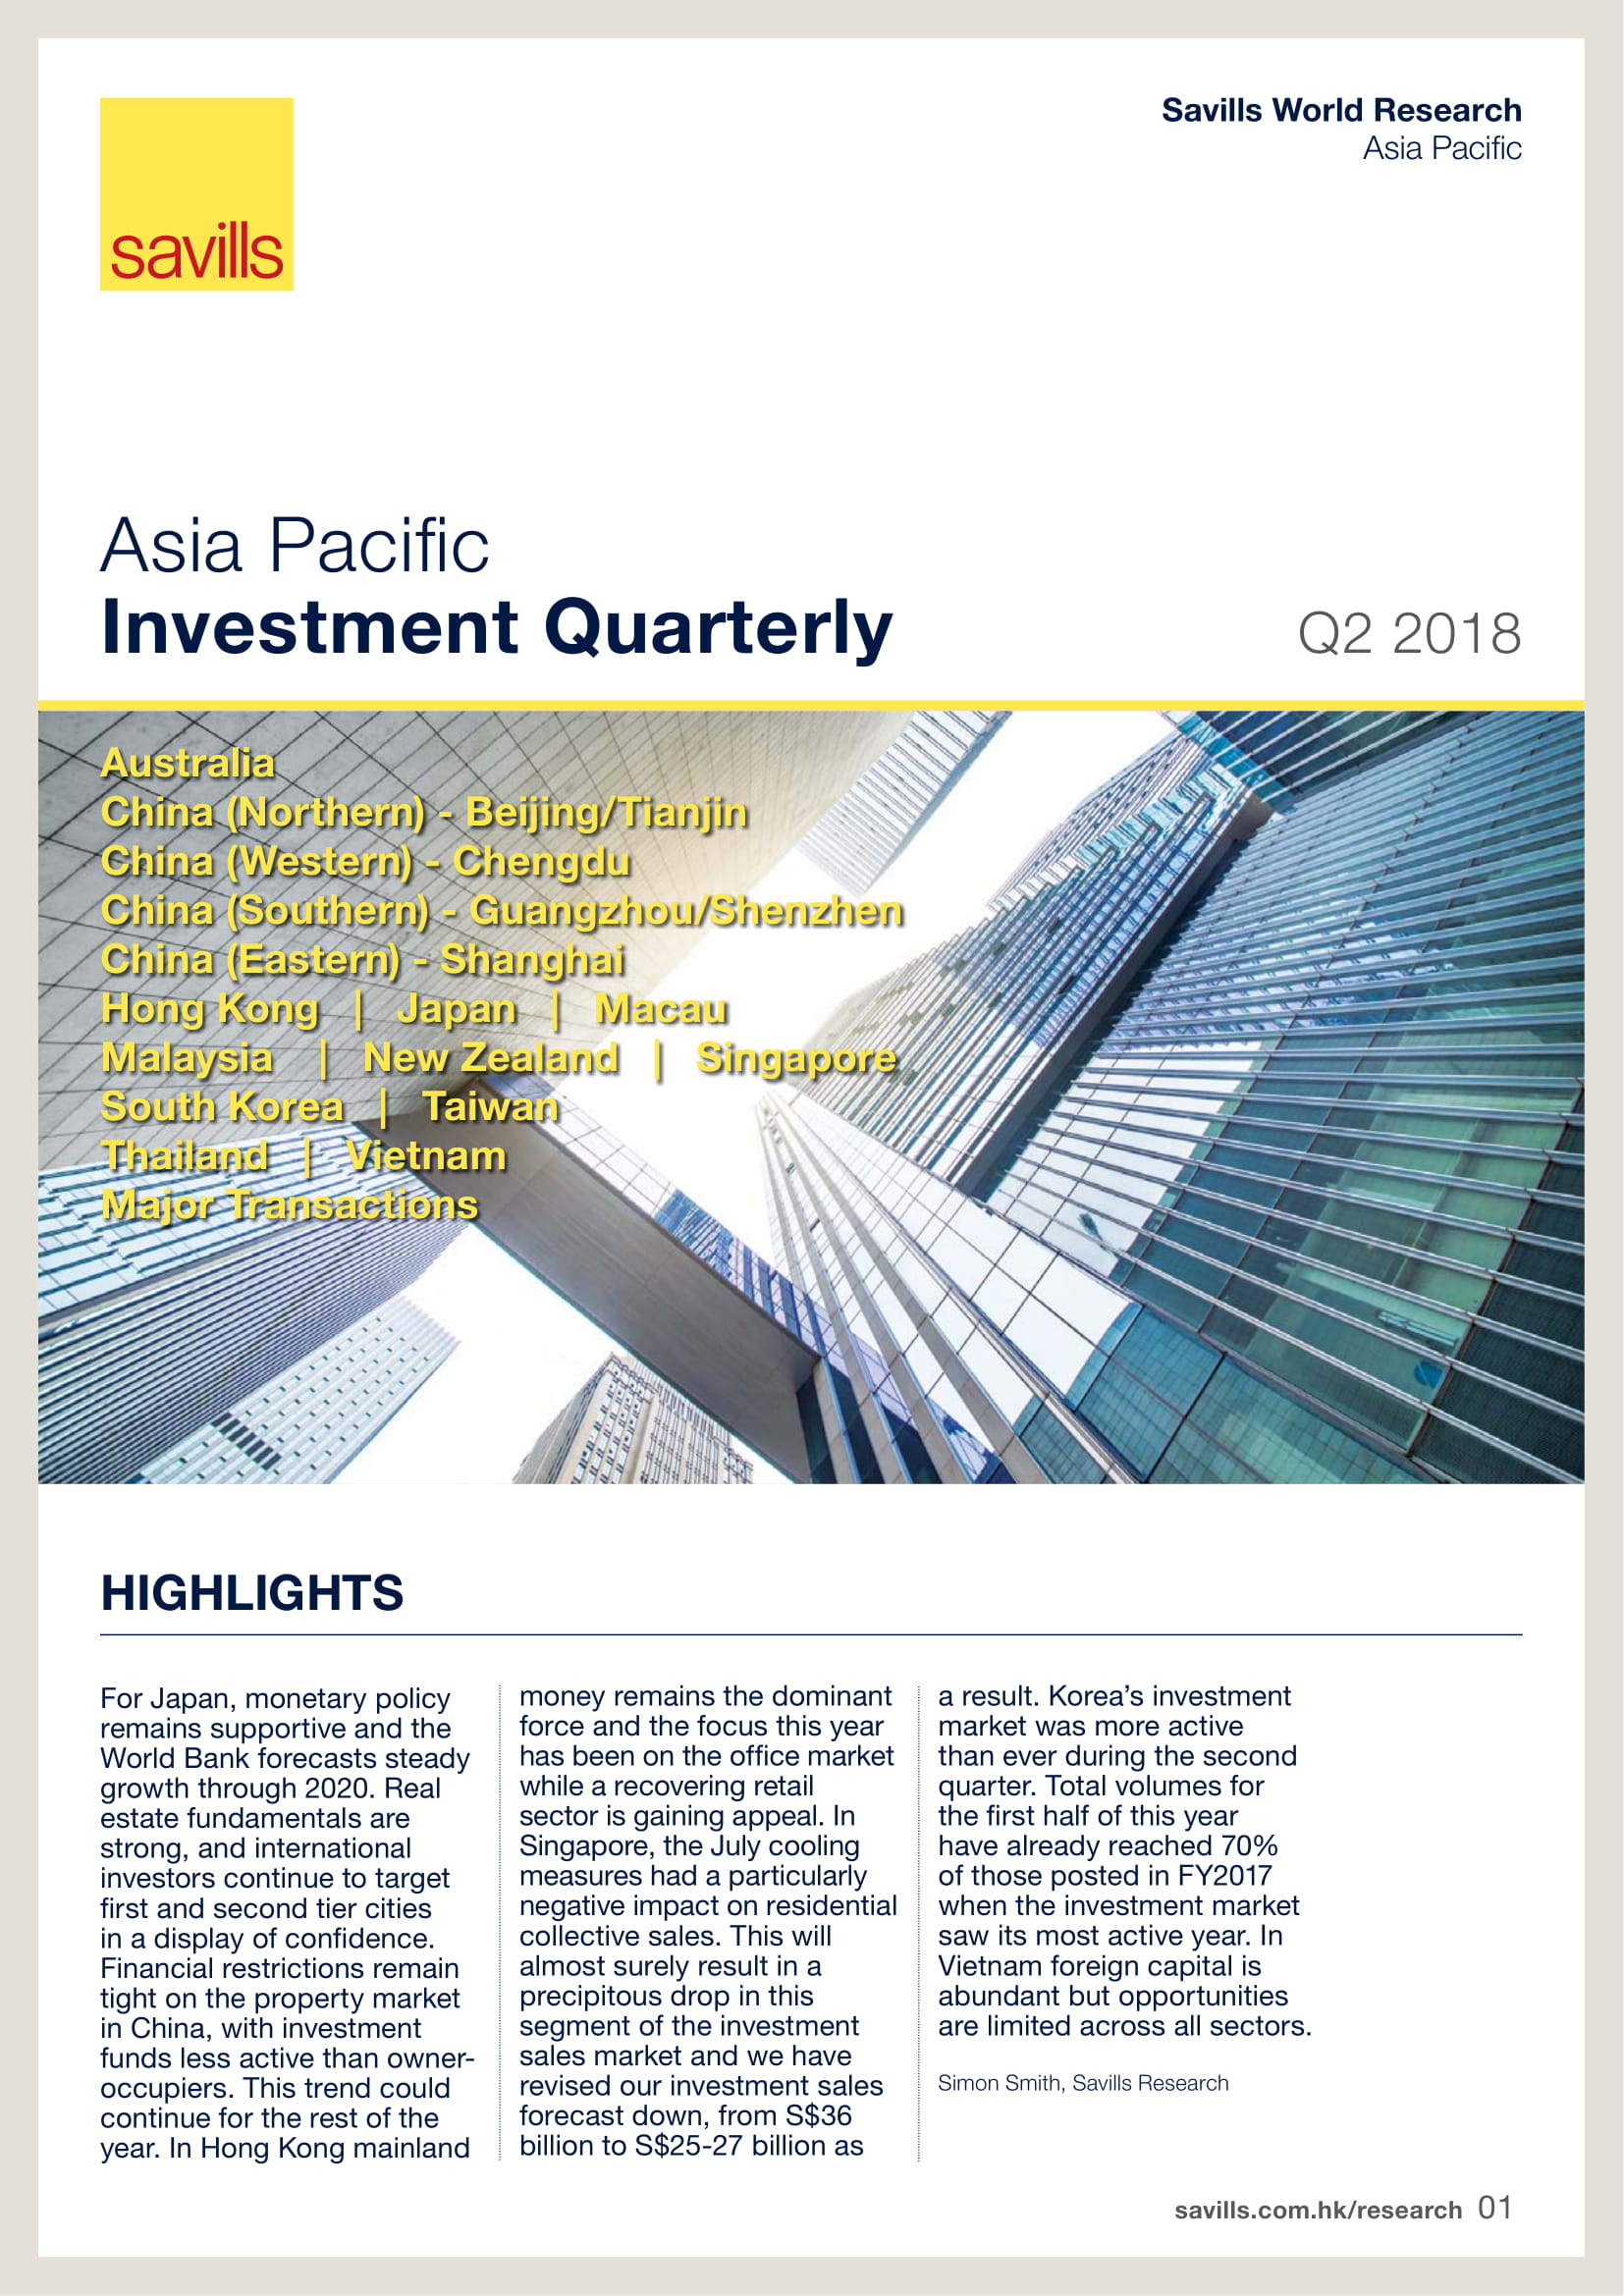 Asia Pacific Investment Quarterly 2Q 2018